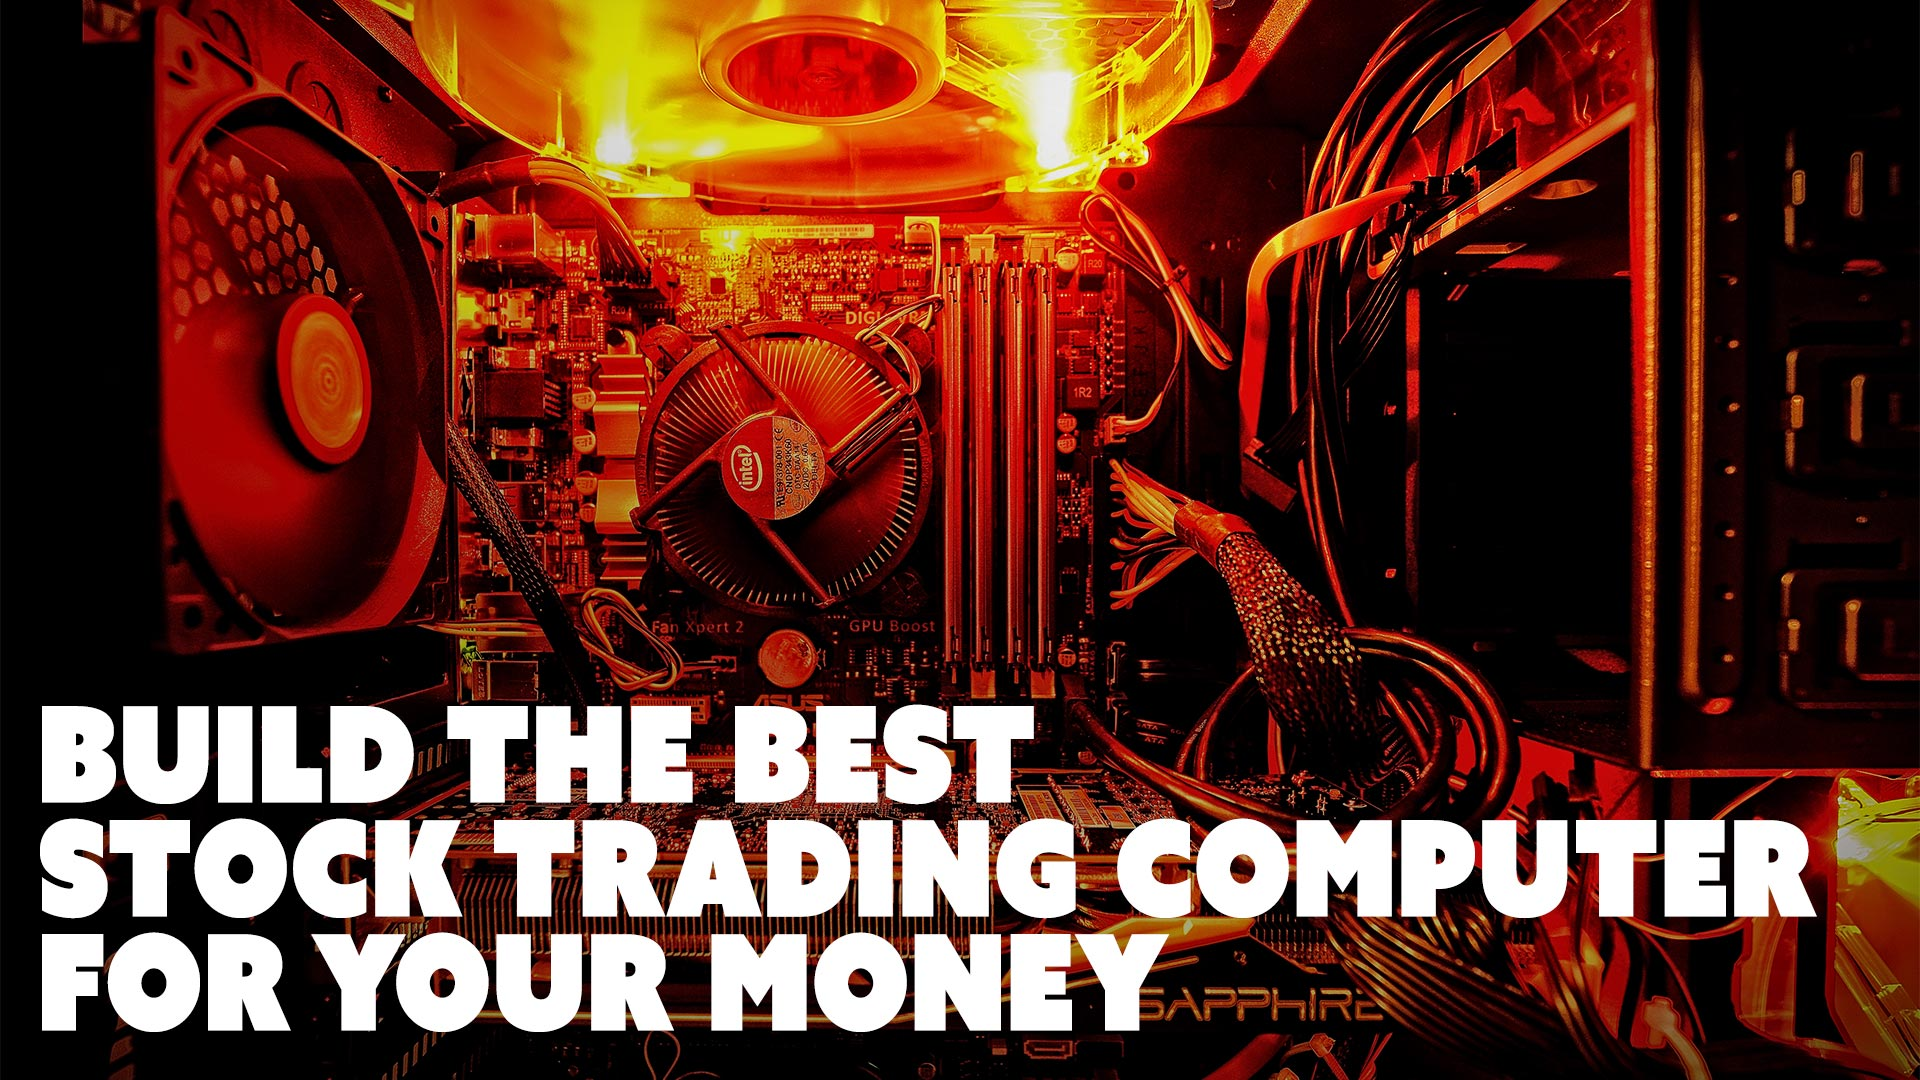 Build the Best Stock Trading Computer for Your Money!